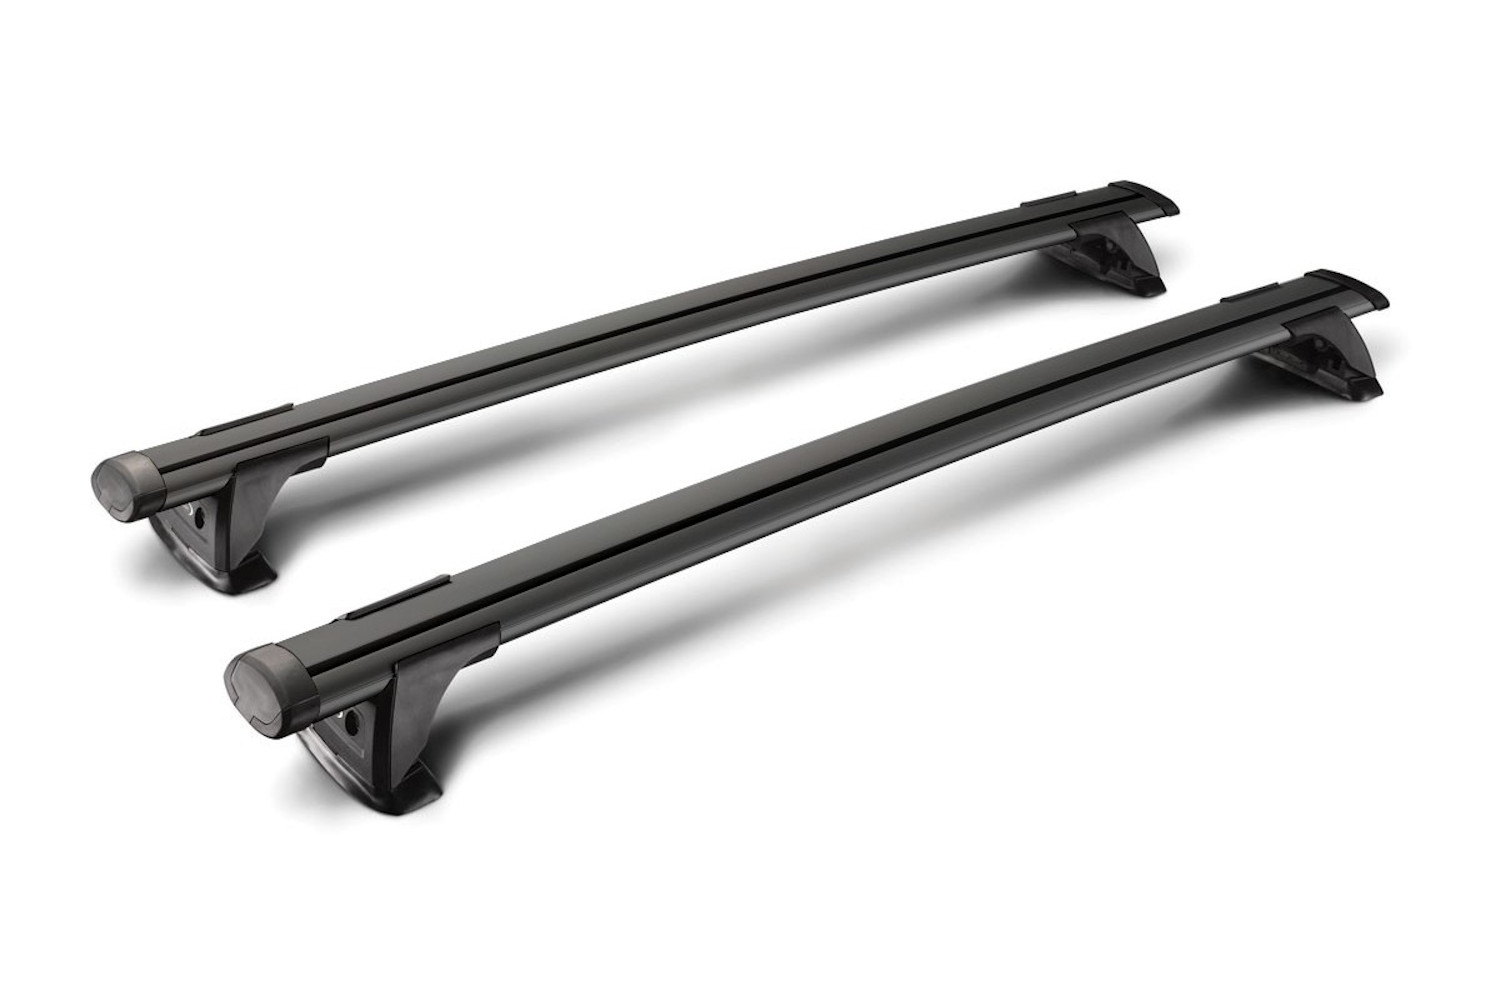 Dakdragers Opel Vectra C 2002-2008 wagon Yakima Whispbar Through Bar zwart